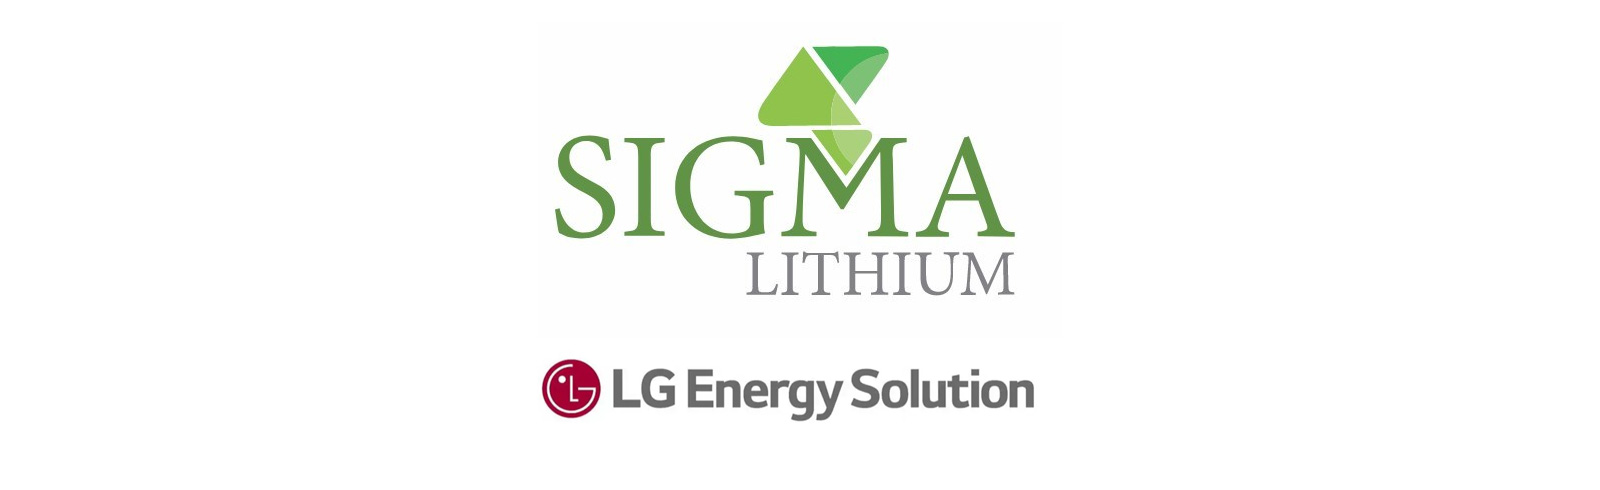 LG Energy Solution procures a 6-year lithium offtake agreement with Sigma Lithium